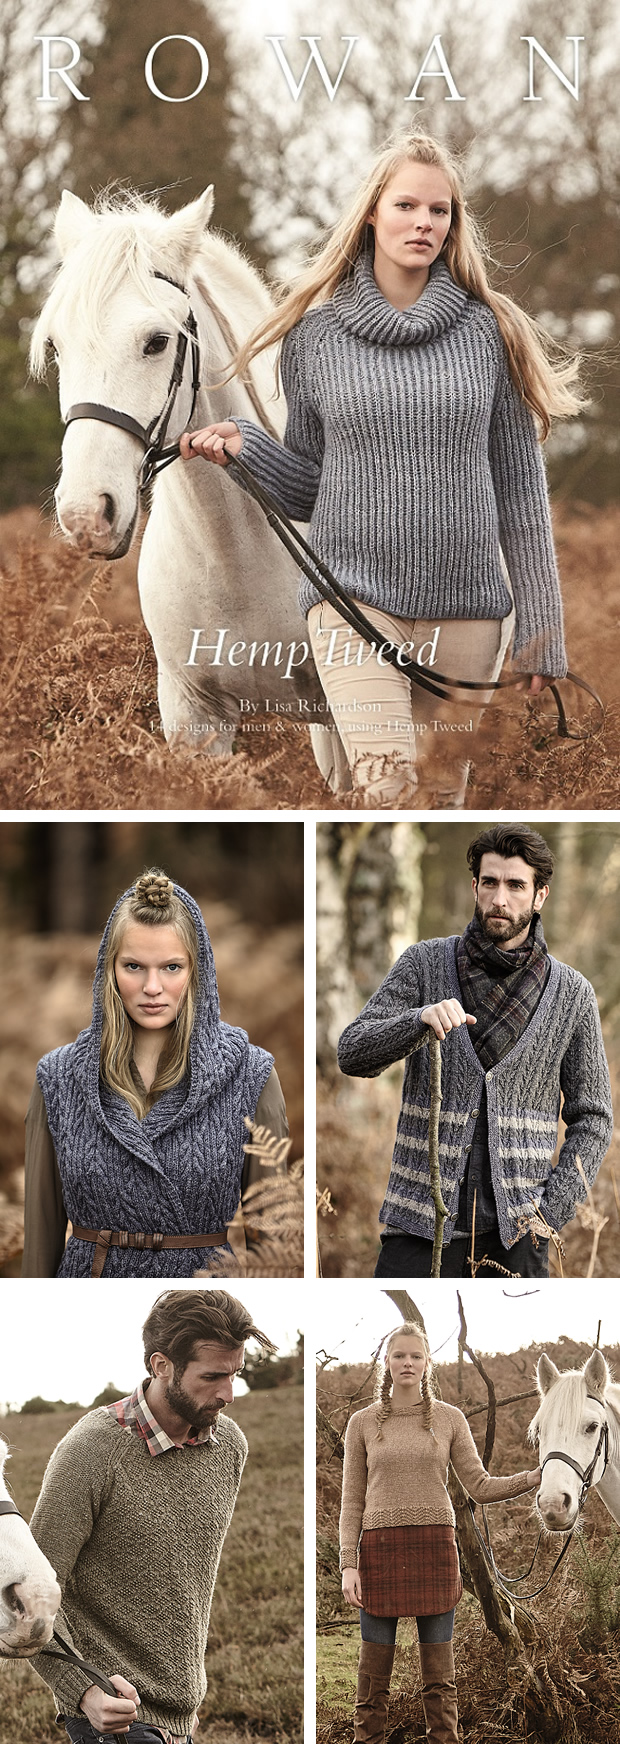 hemp_tweed_book